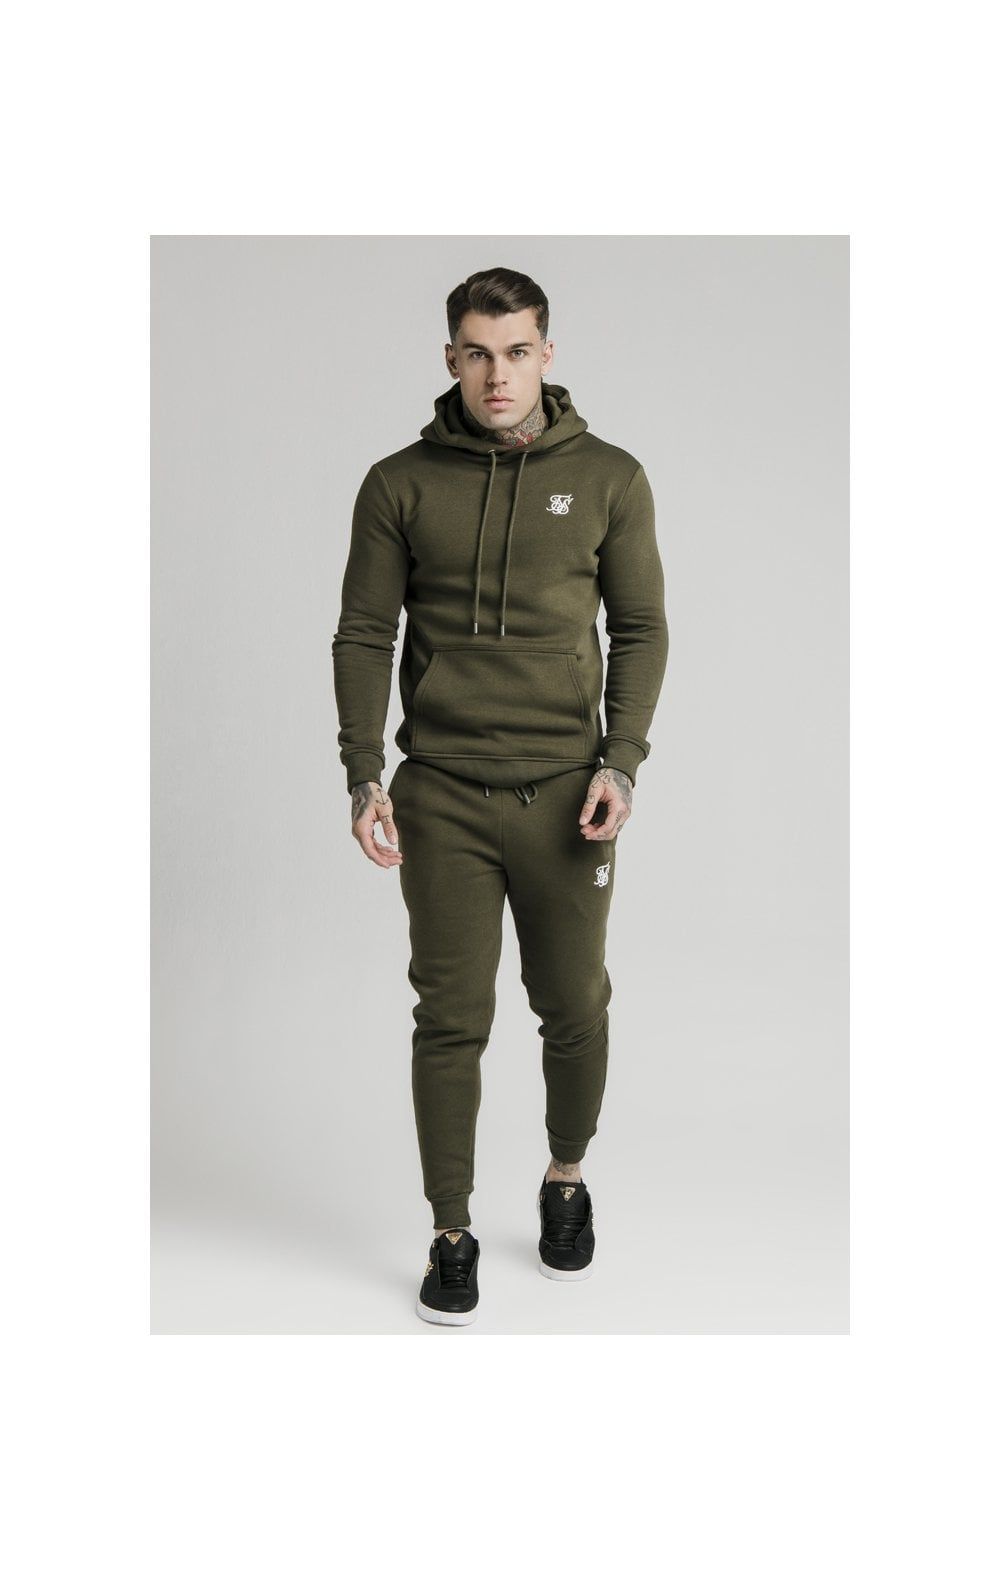 Load image into Gallery viewer, SikSilk Muscle Fit Overhead Hoodie - Khaki (4)